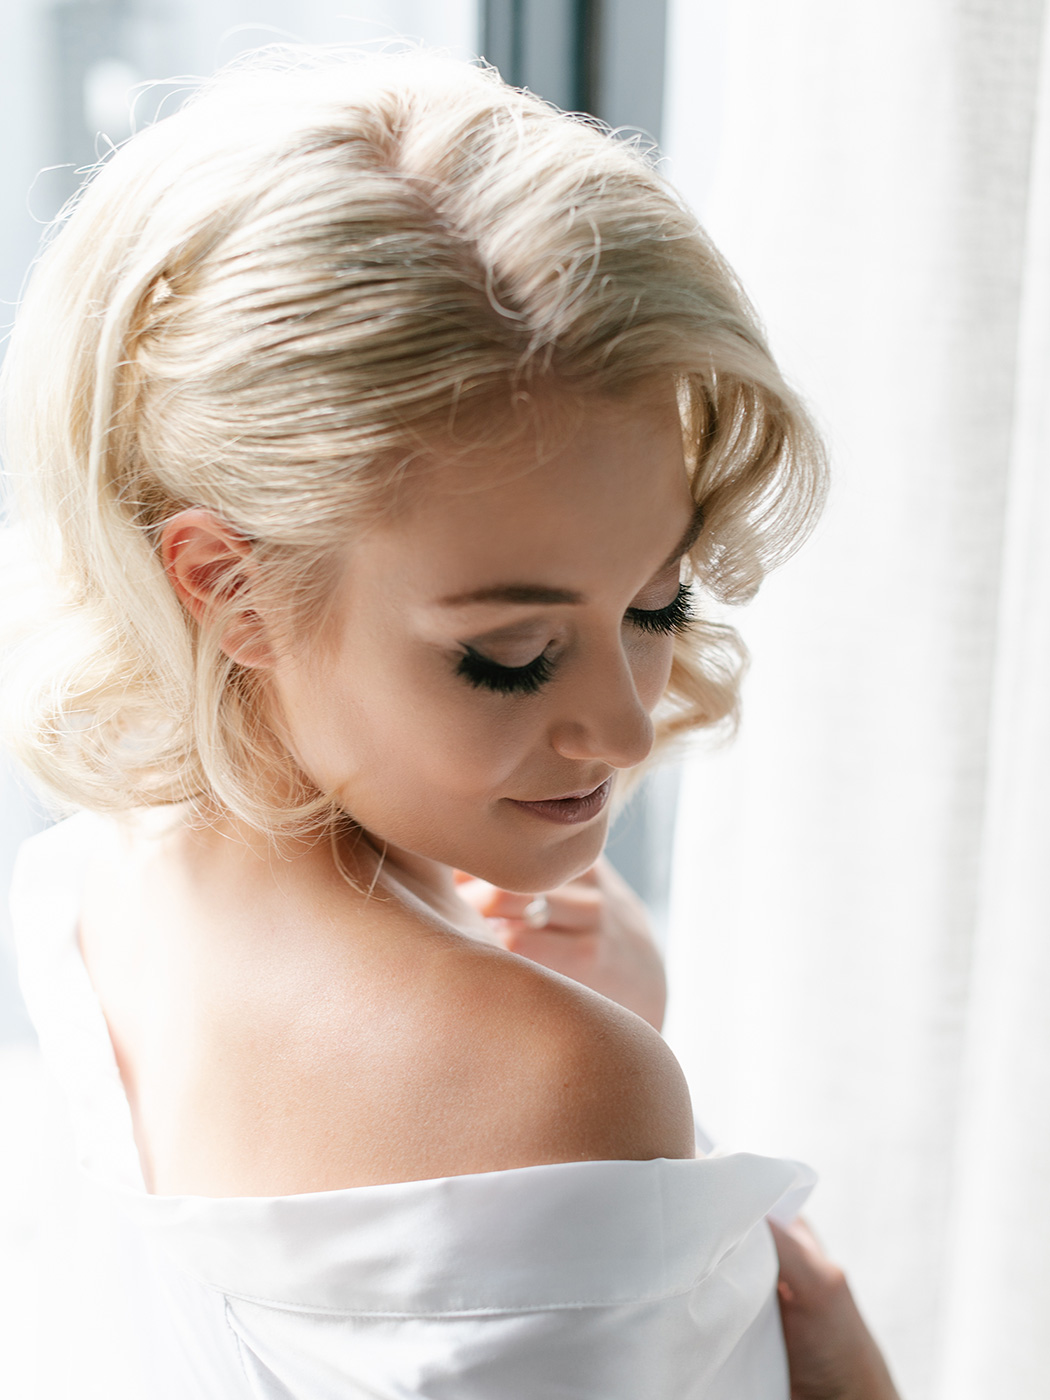 Bride Getting Ready | Rensche Mari